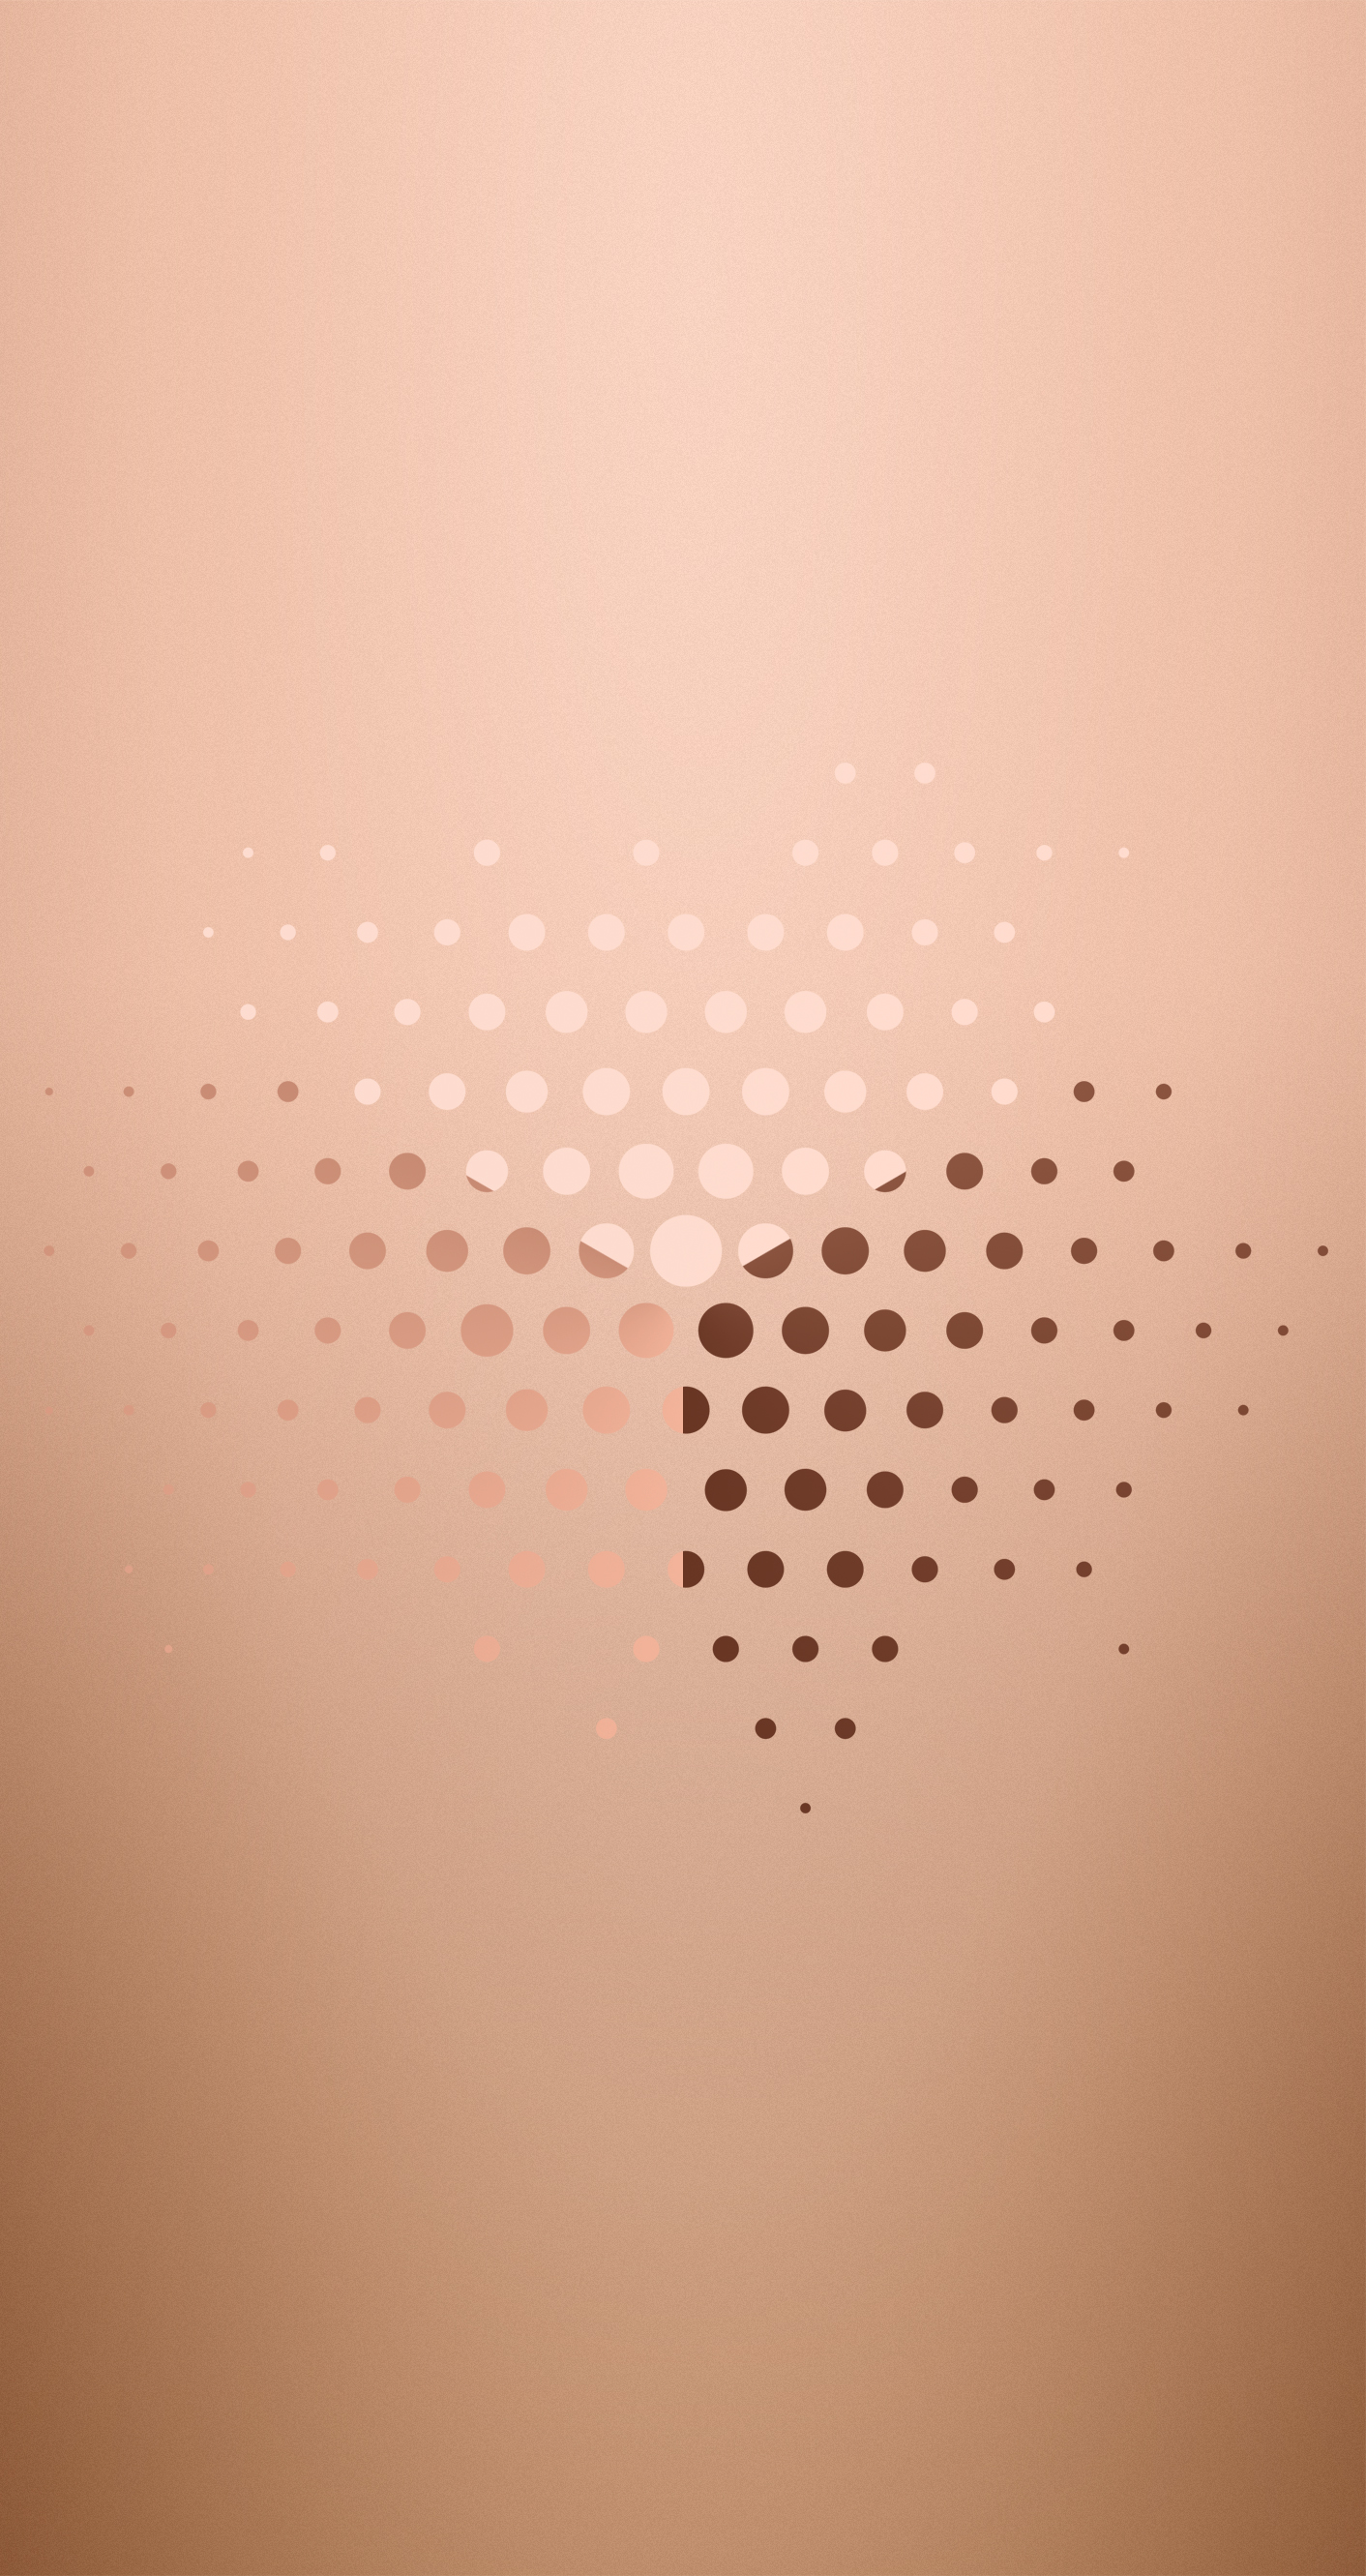 Rose gold iphone wallpaper wallpapersafari - Rose gold background for iphone ...